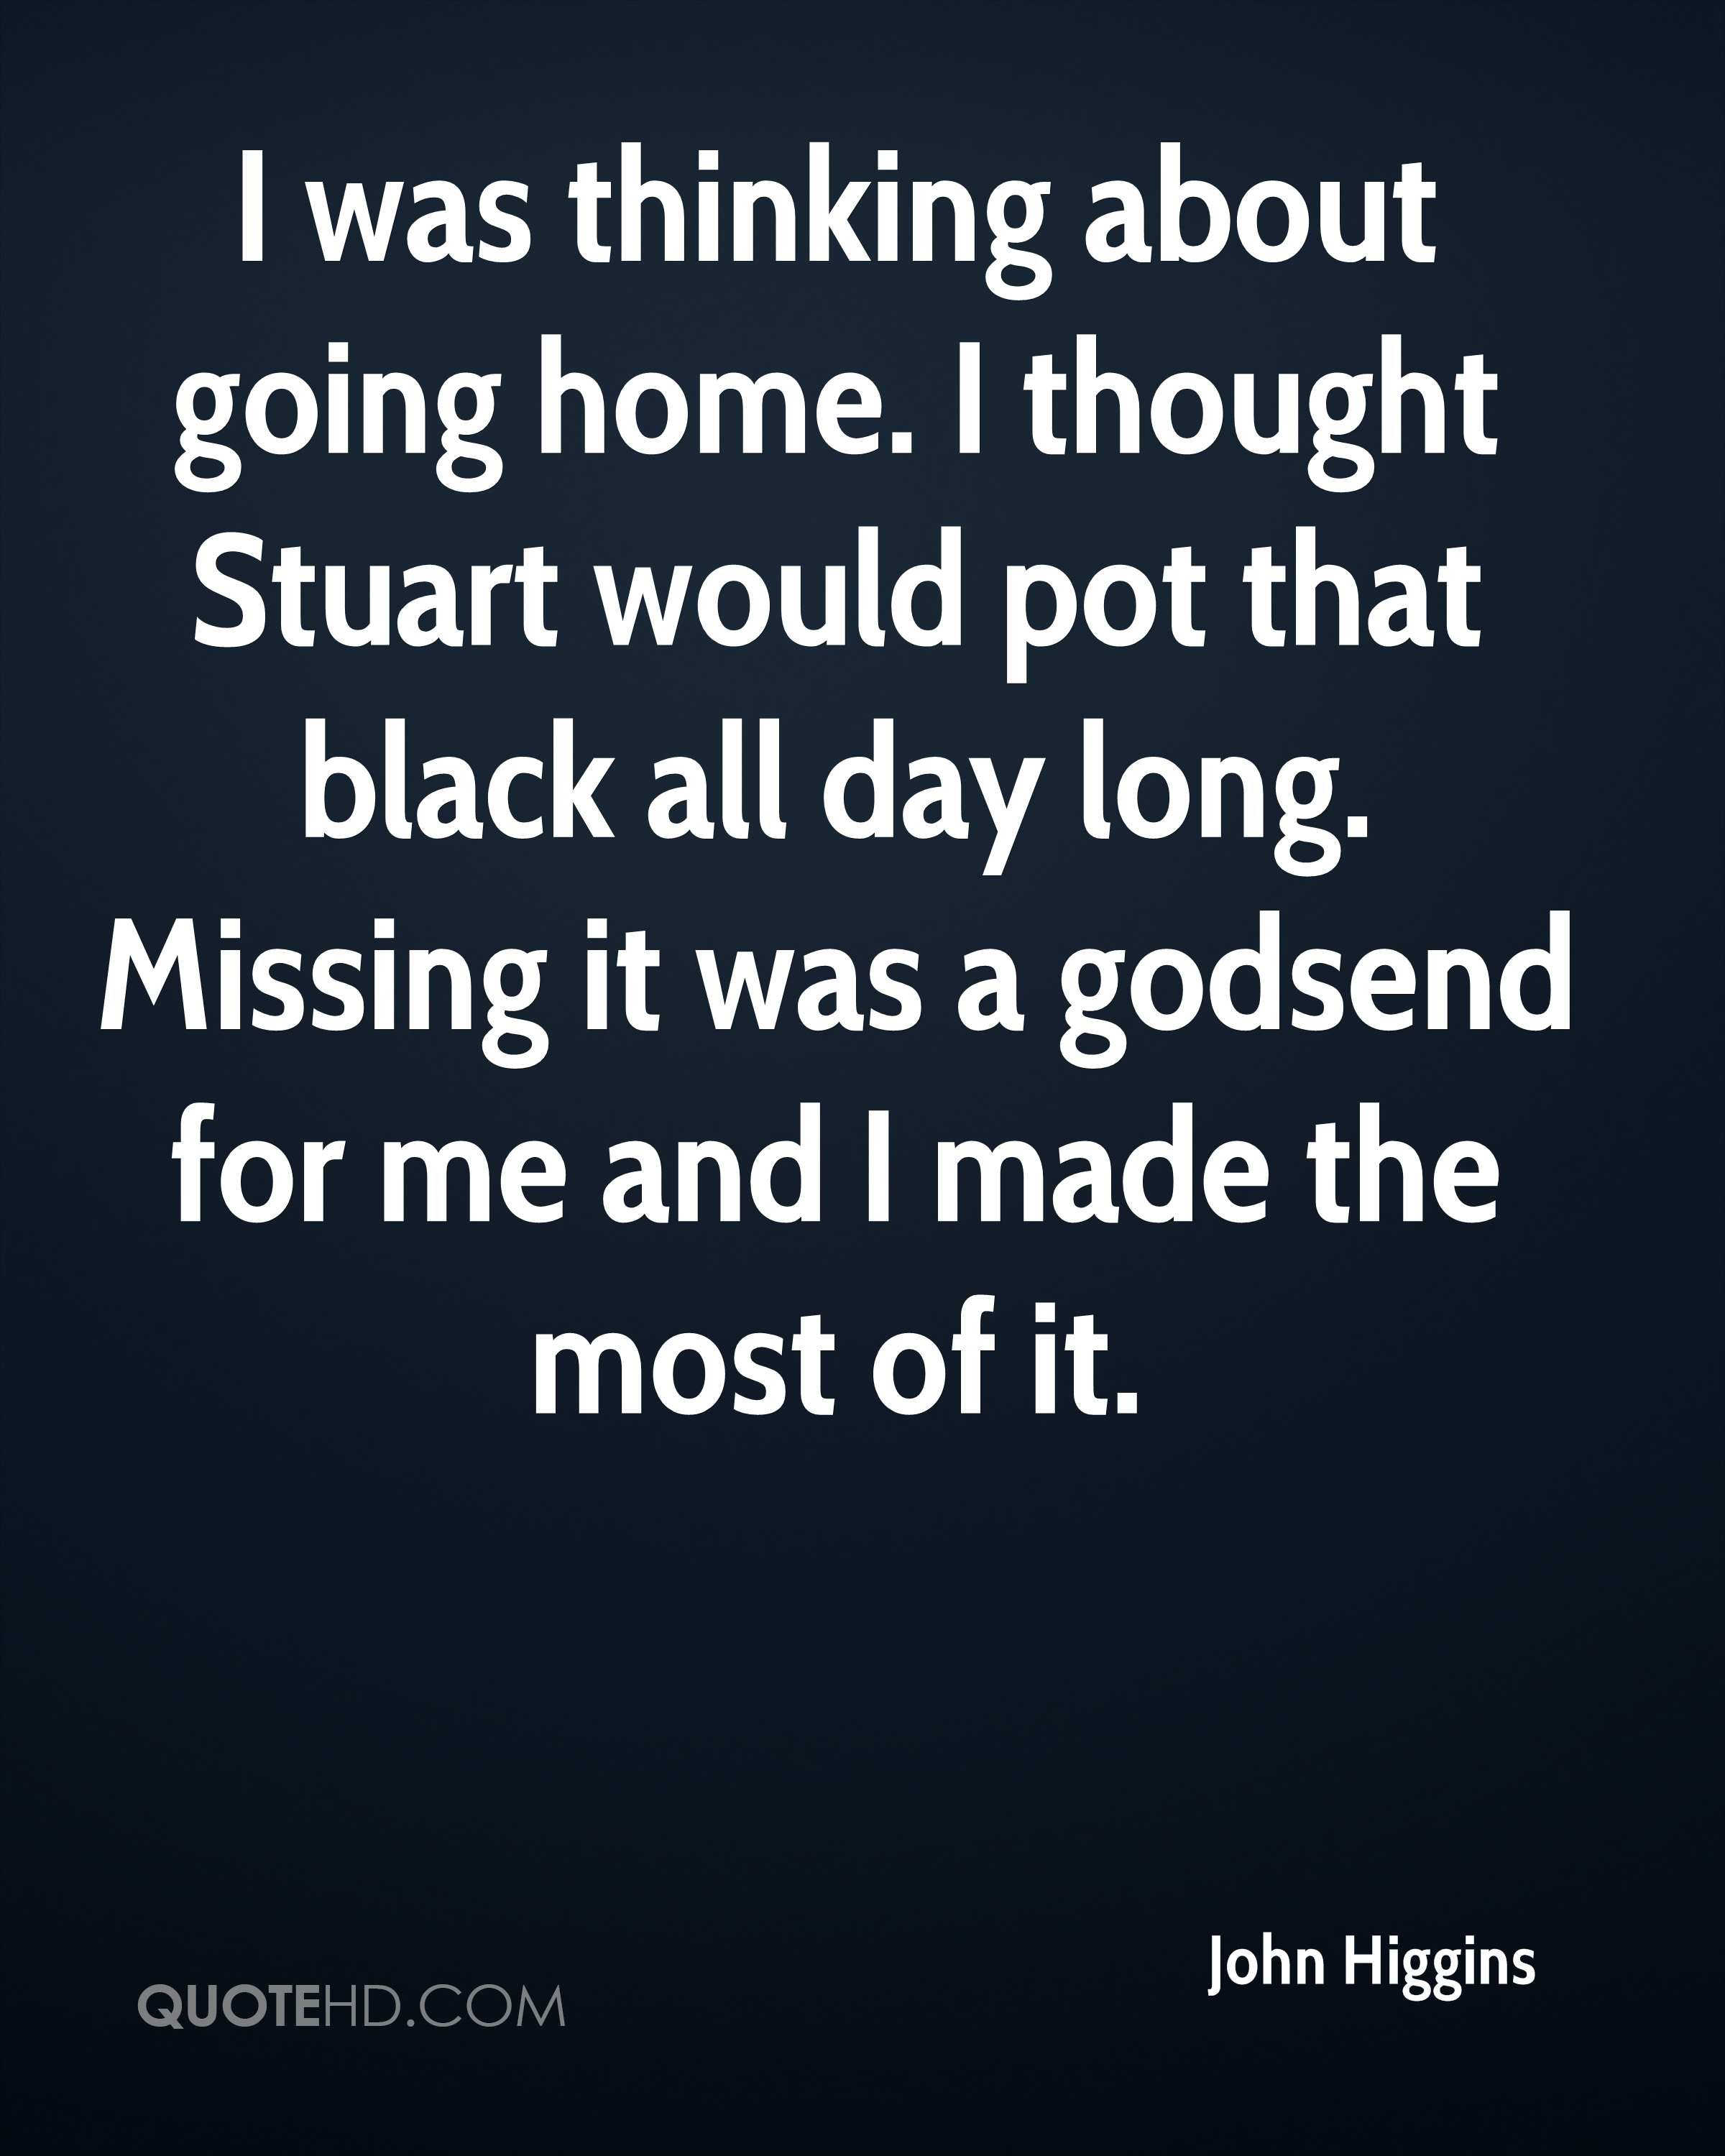 I was thinking about going home. I thought Stuart would pot that black all day long. Missing it was a godsend for me and I made the most of it.